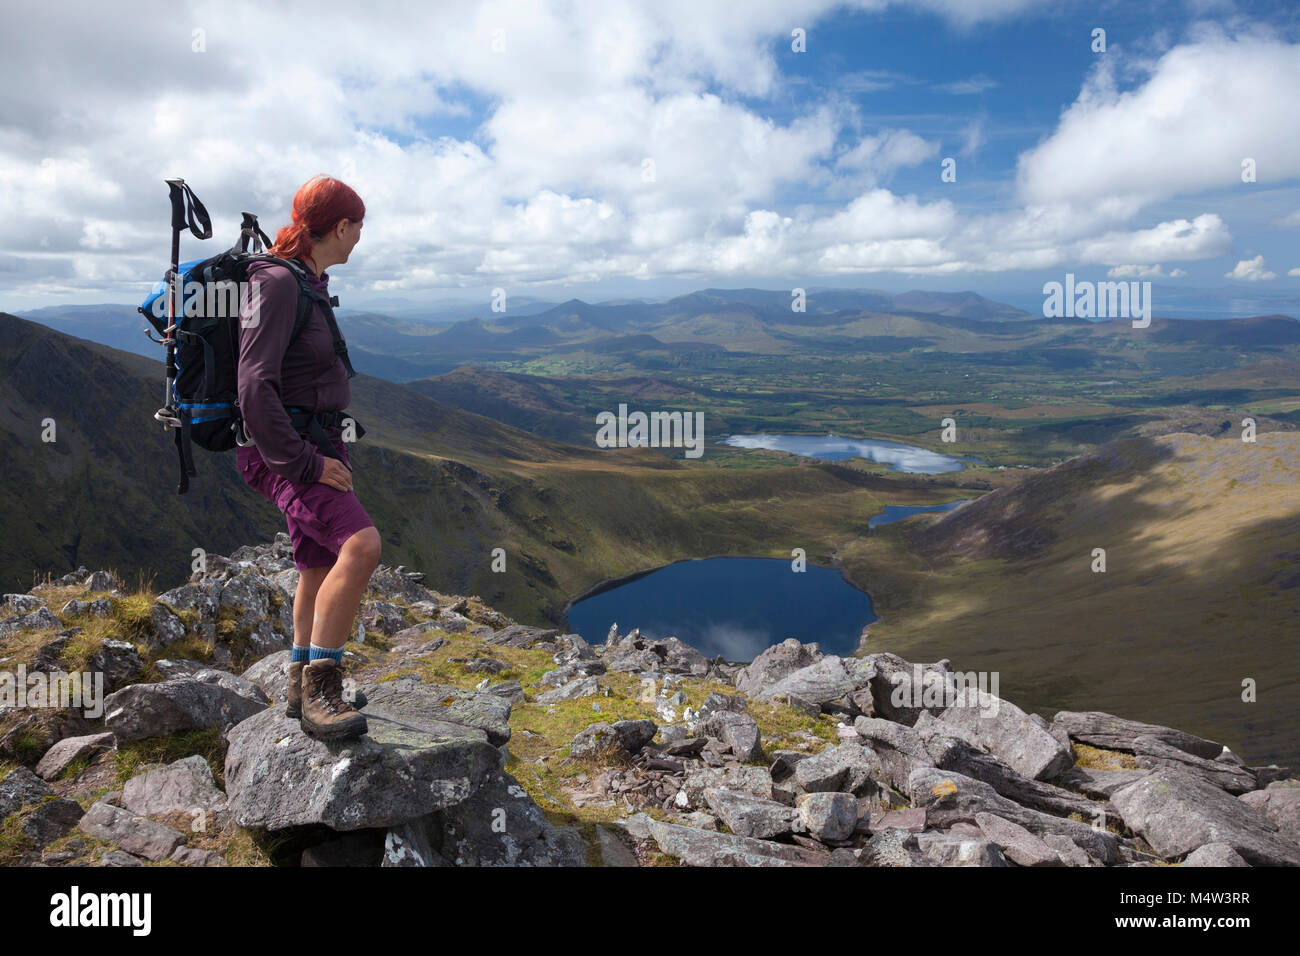 Hiker looking over Coomloughra Lough from Beenkeragh, MacGillycuddy's Reeks, County Kerry, Ireland. - Stock Image